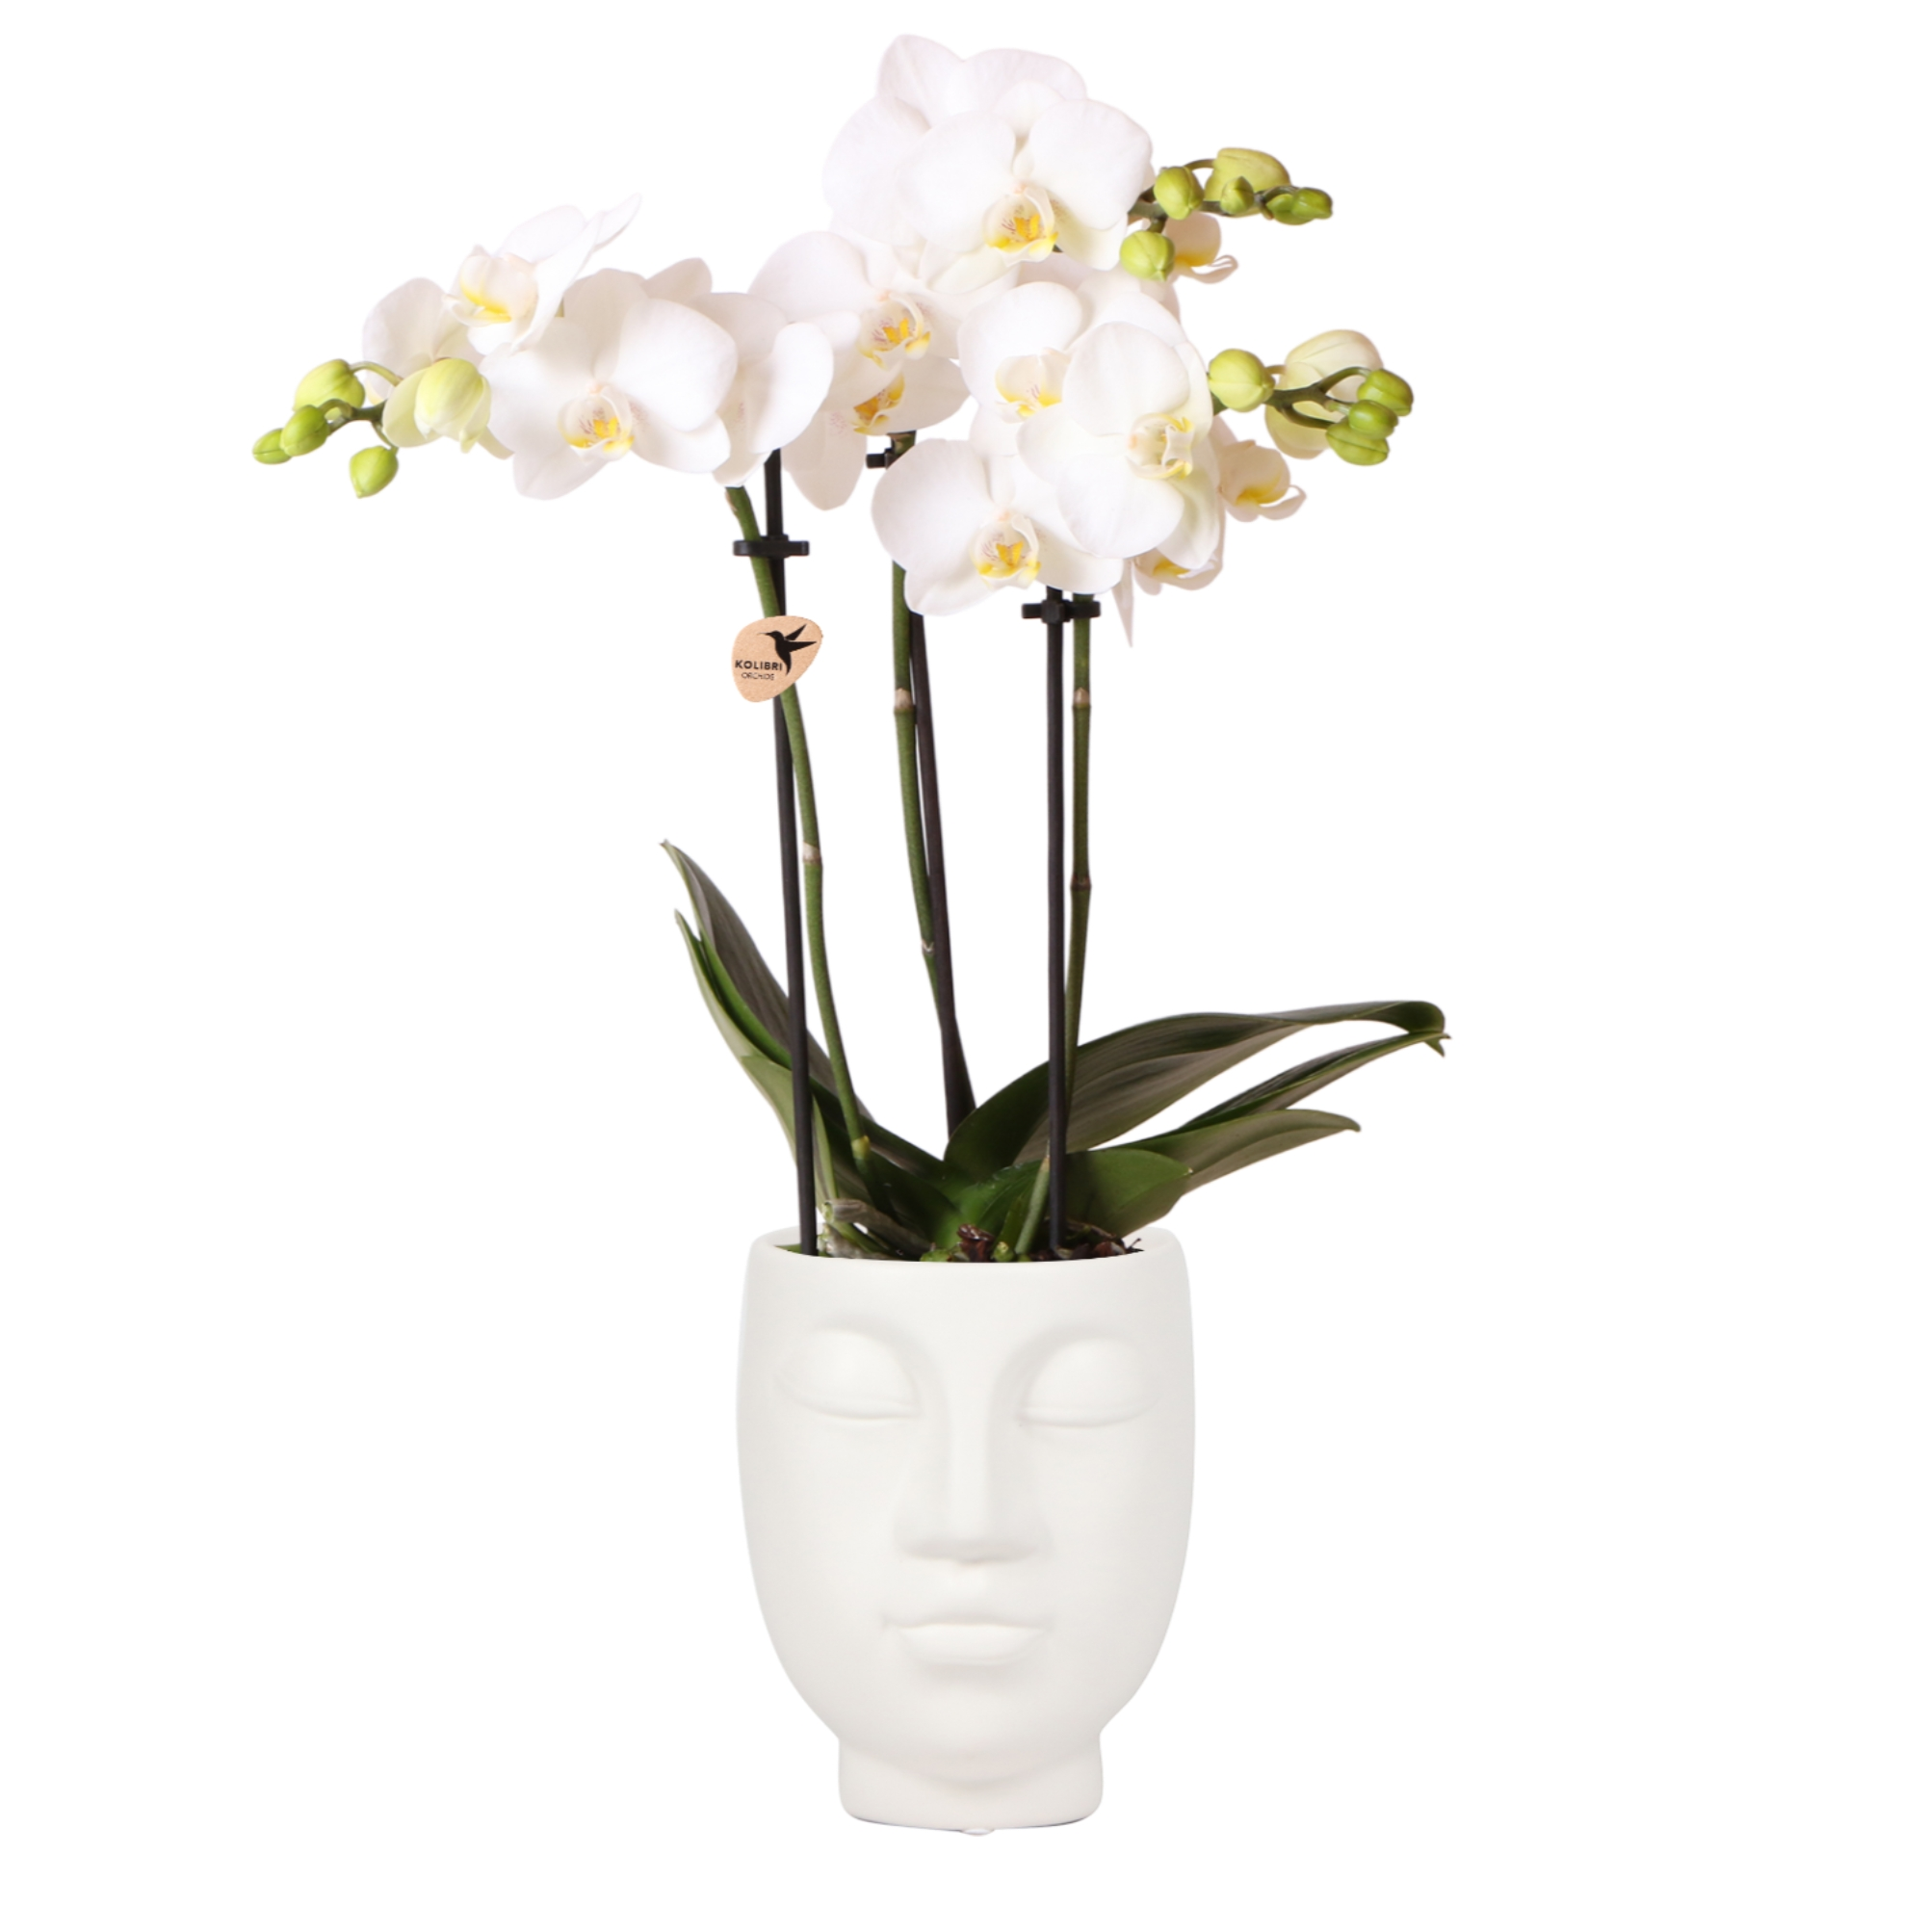 Kolibri Orchids orchidee phalaenopsis wit in face 2 face pot wit 9cm